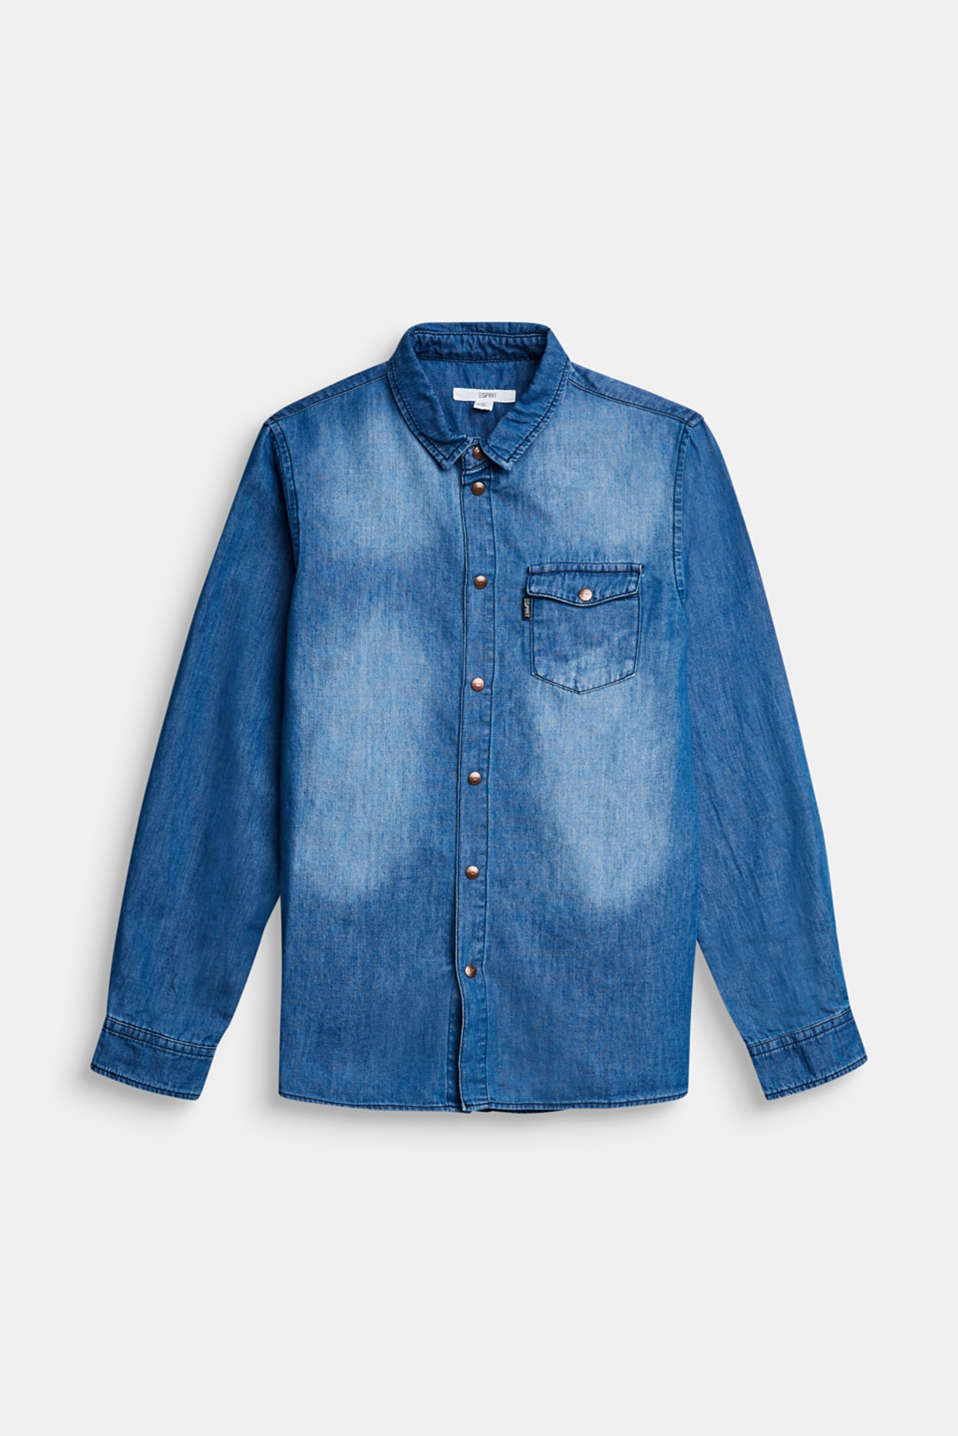 Esprit - Denim shirt made of cotton/lyocell